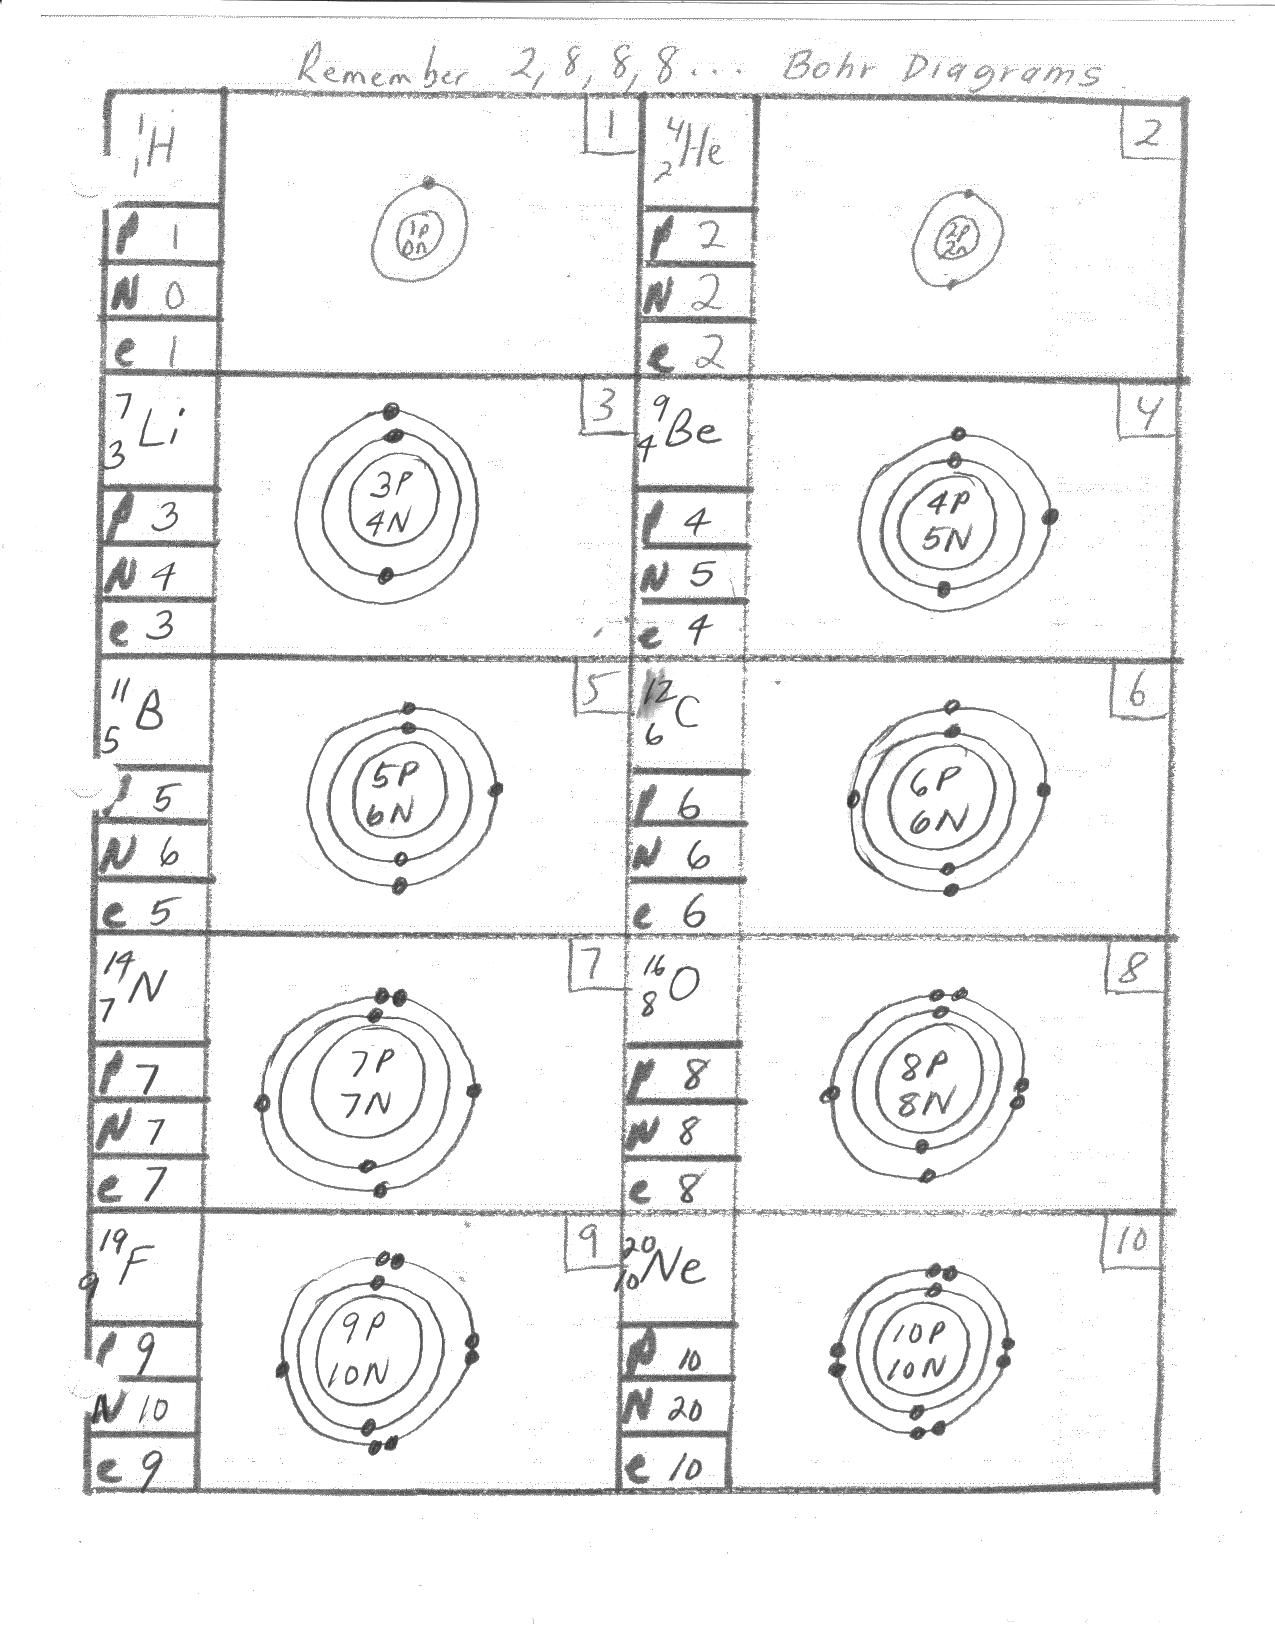 Worksheets Bohr Model Worksheet mar 8 23 bohr rutherford diagrams 1 10 11 20 14 chemical collection of model worksheets bluegreenish